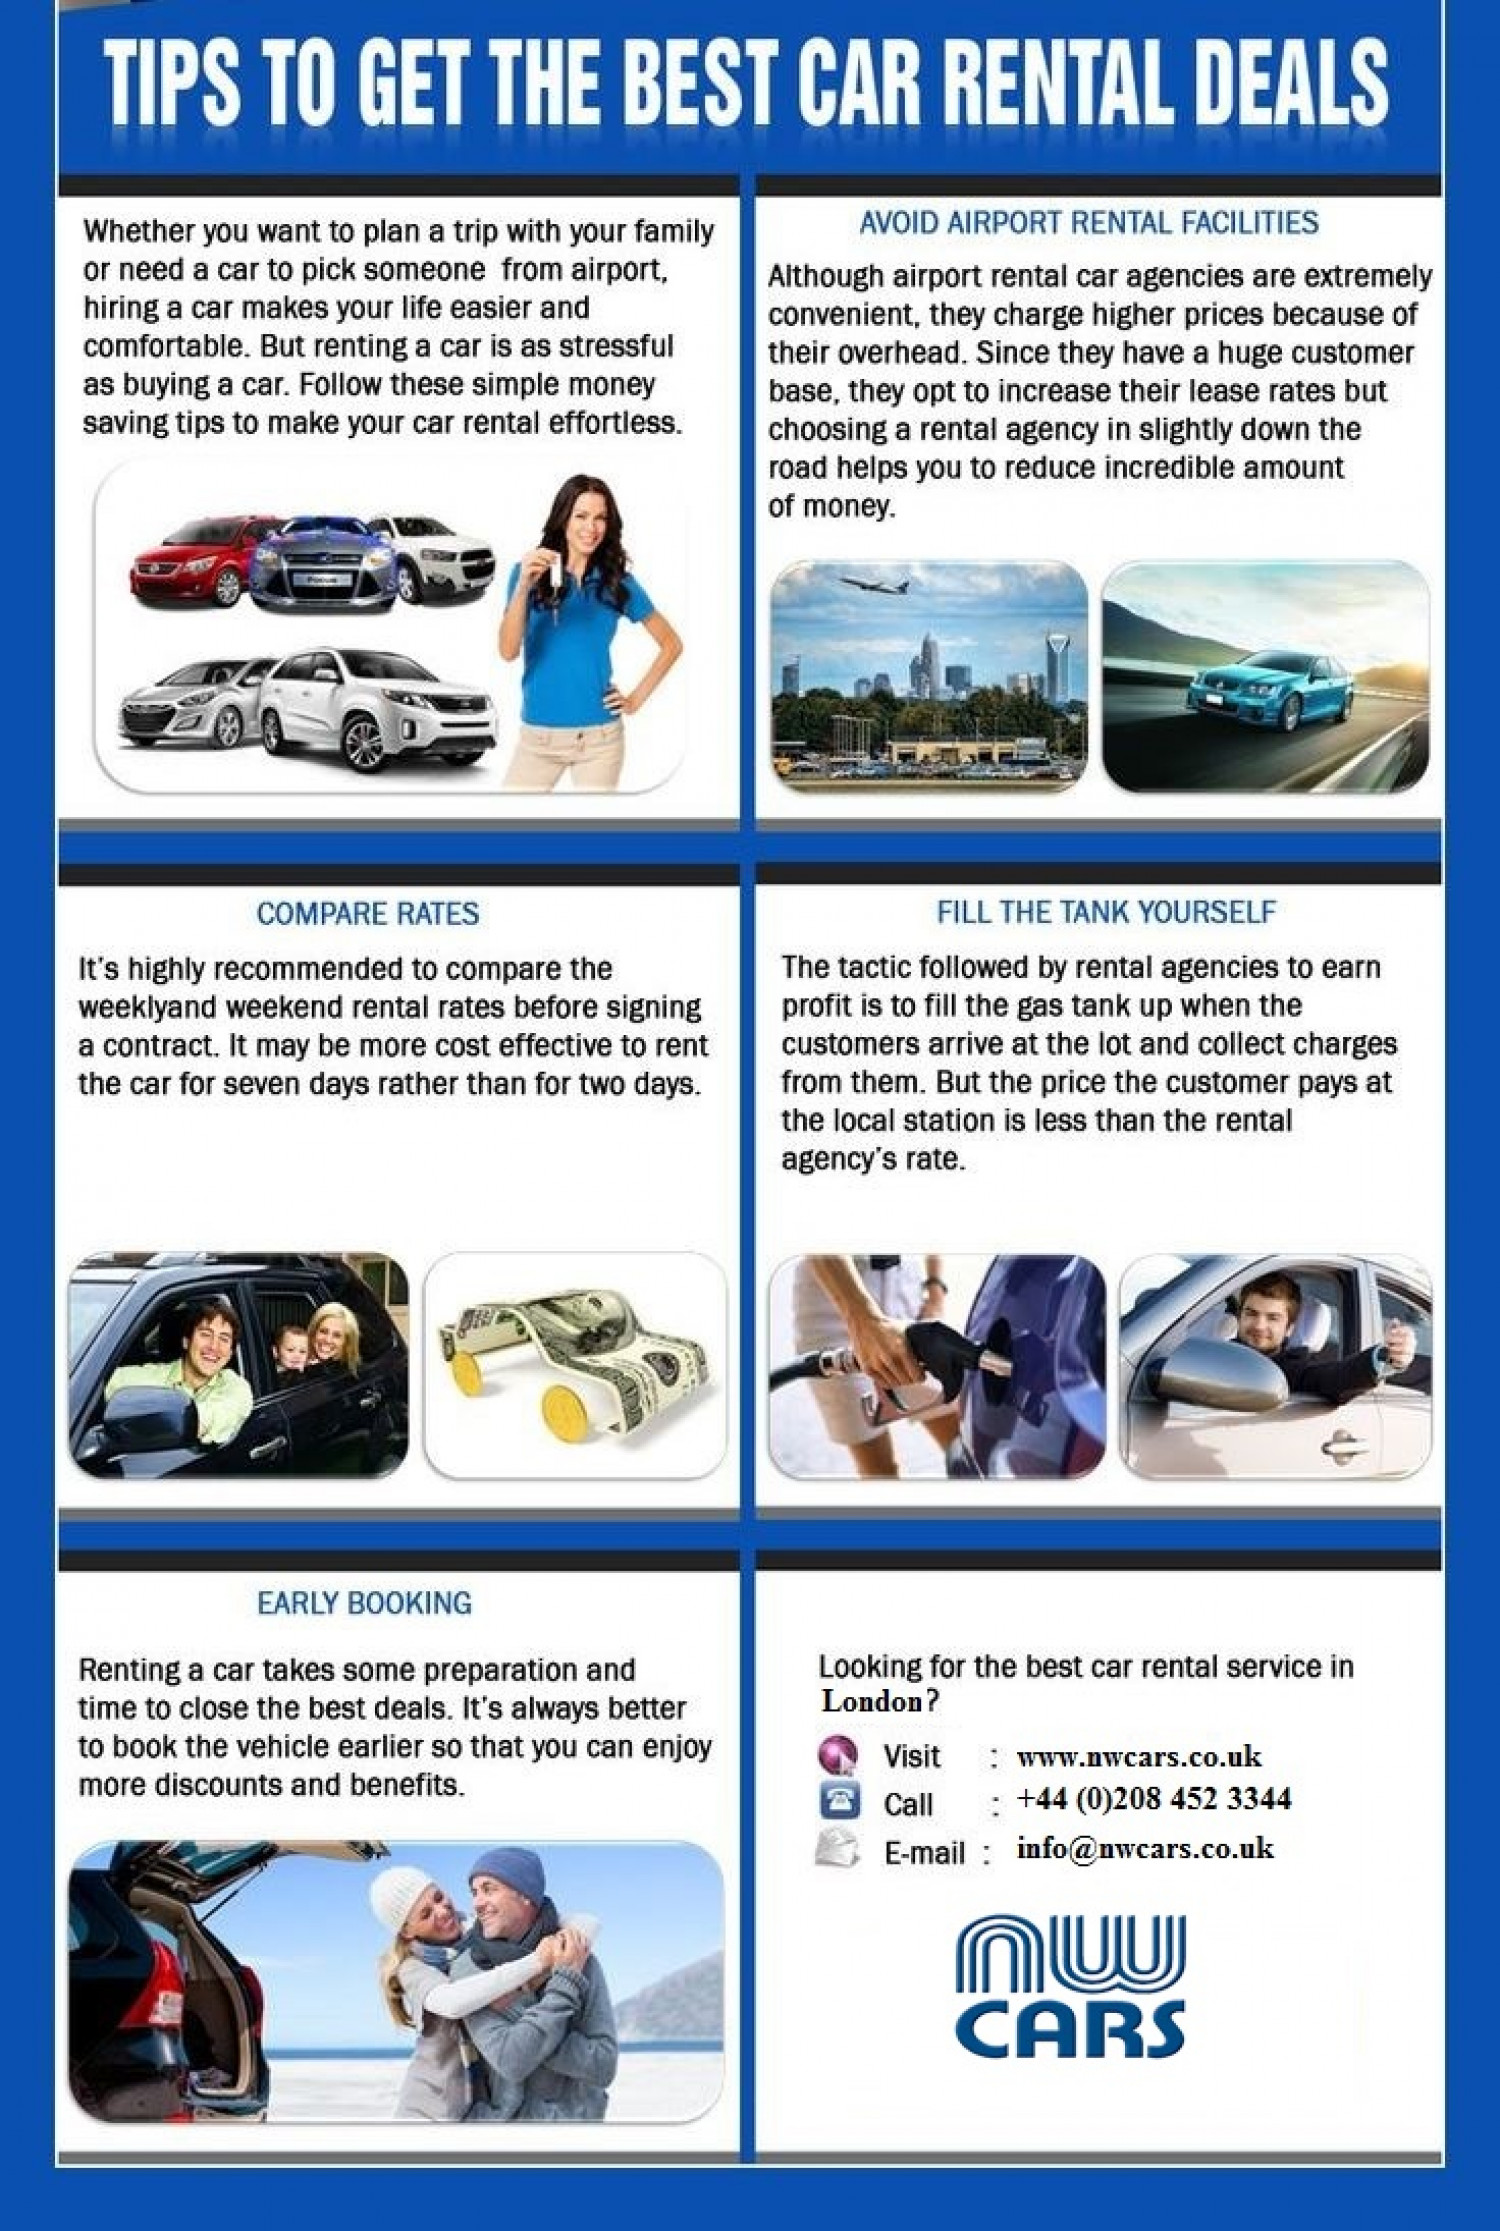 Tips to get the best car rental deals infographic